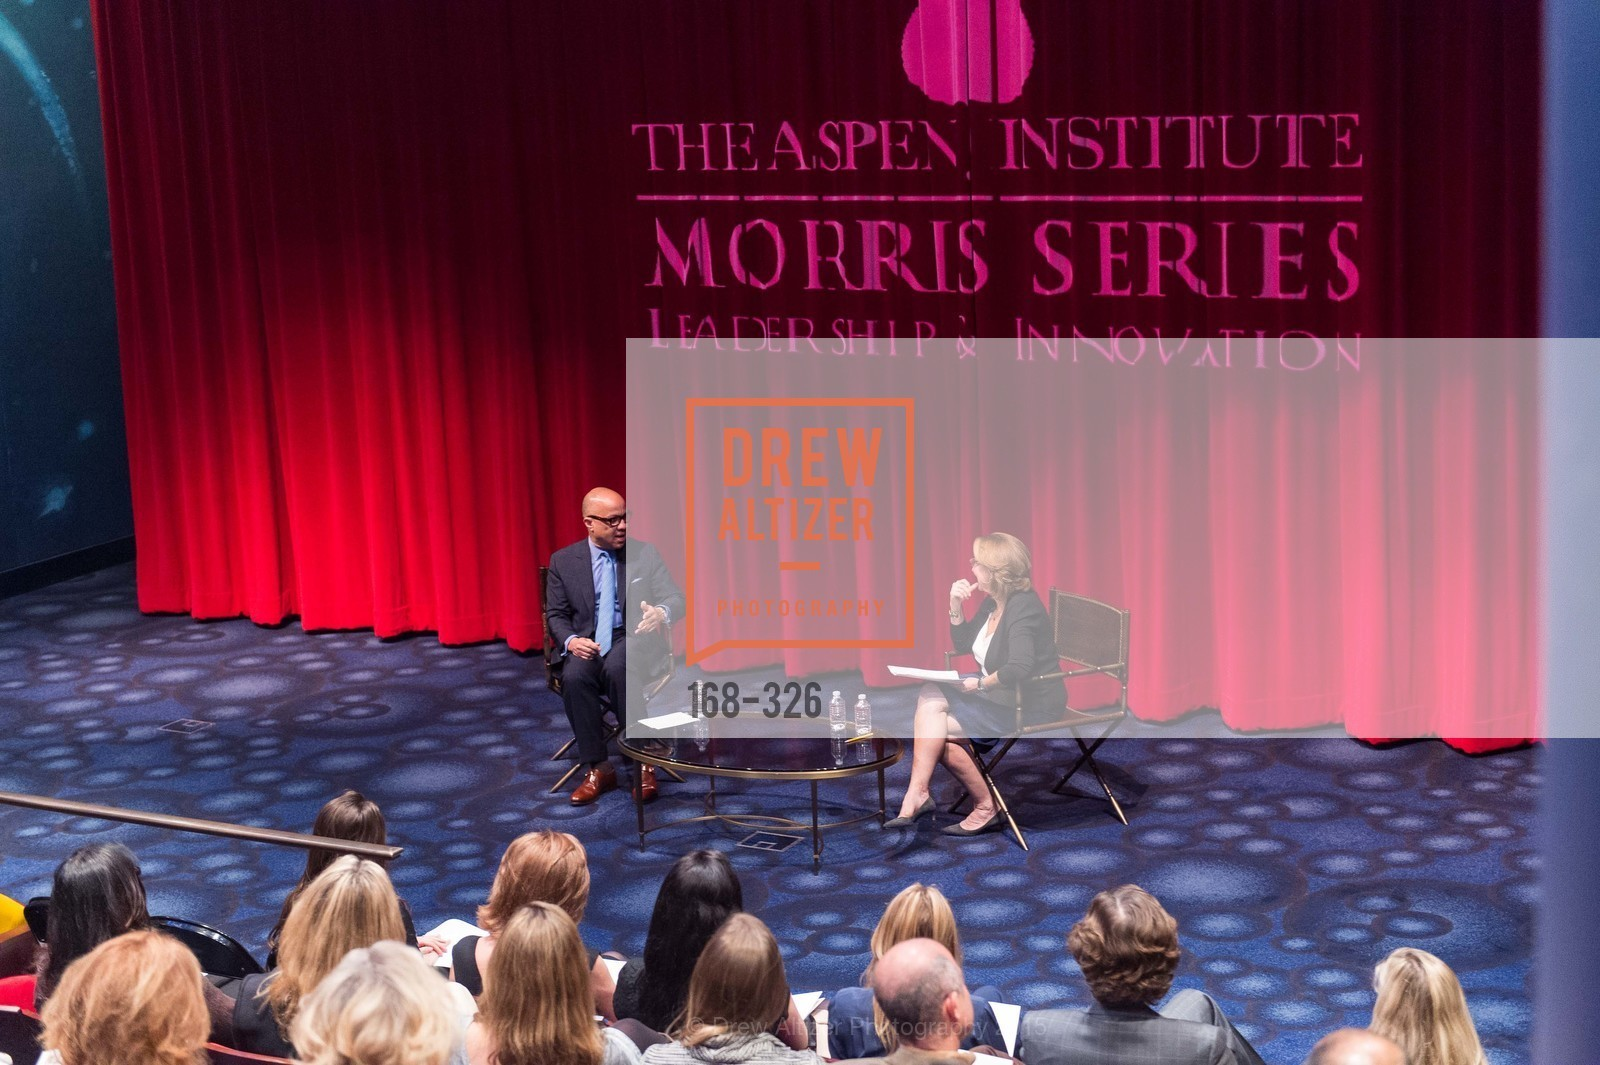 Top Picks, Aspen Institute's Morris Series Lectures: Leadership and Innovation Program, September 30th, 2015, Photo,Drew Altizer, Drew Altizer Photography, full-service agency, private events, San Francisco photographer, photographer california